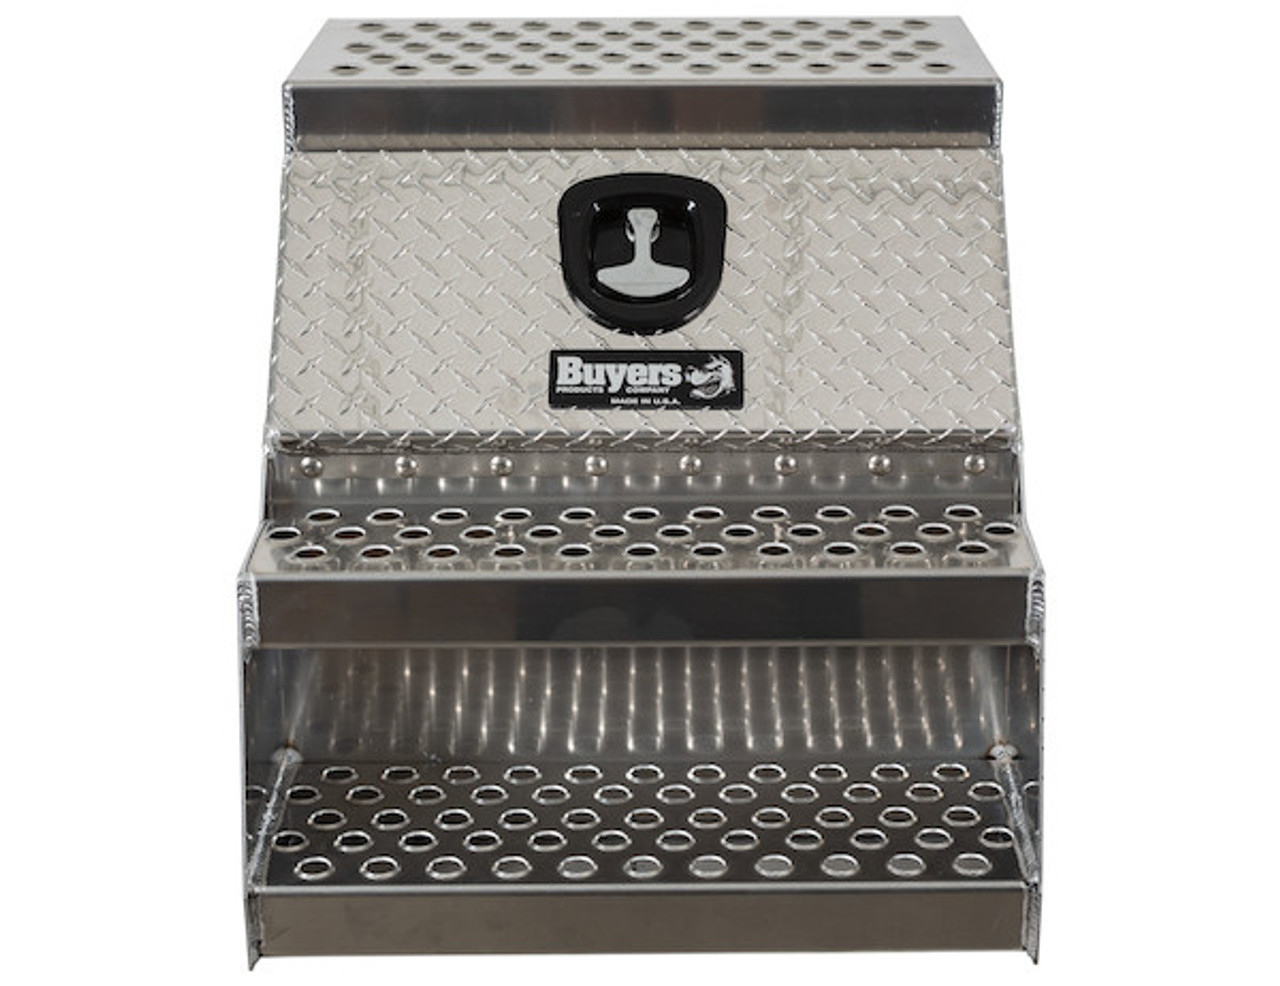 1705182 BUYERS PRODUCTS HEAVY DUTY DIAMOND TREAD ALUMINUM STEP TOOLBOX